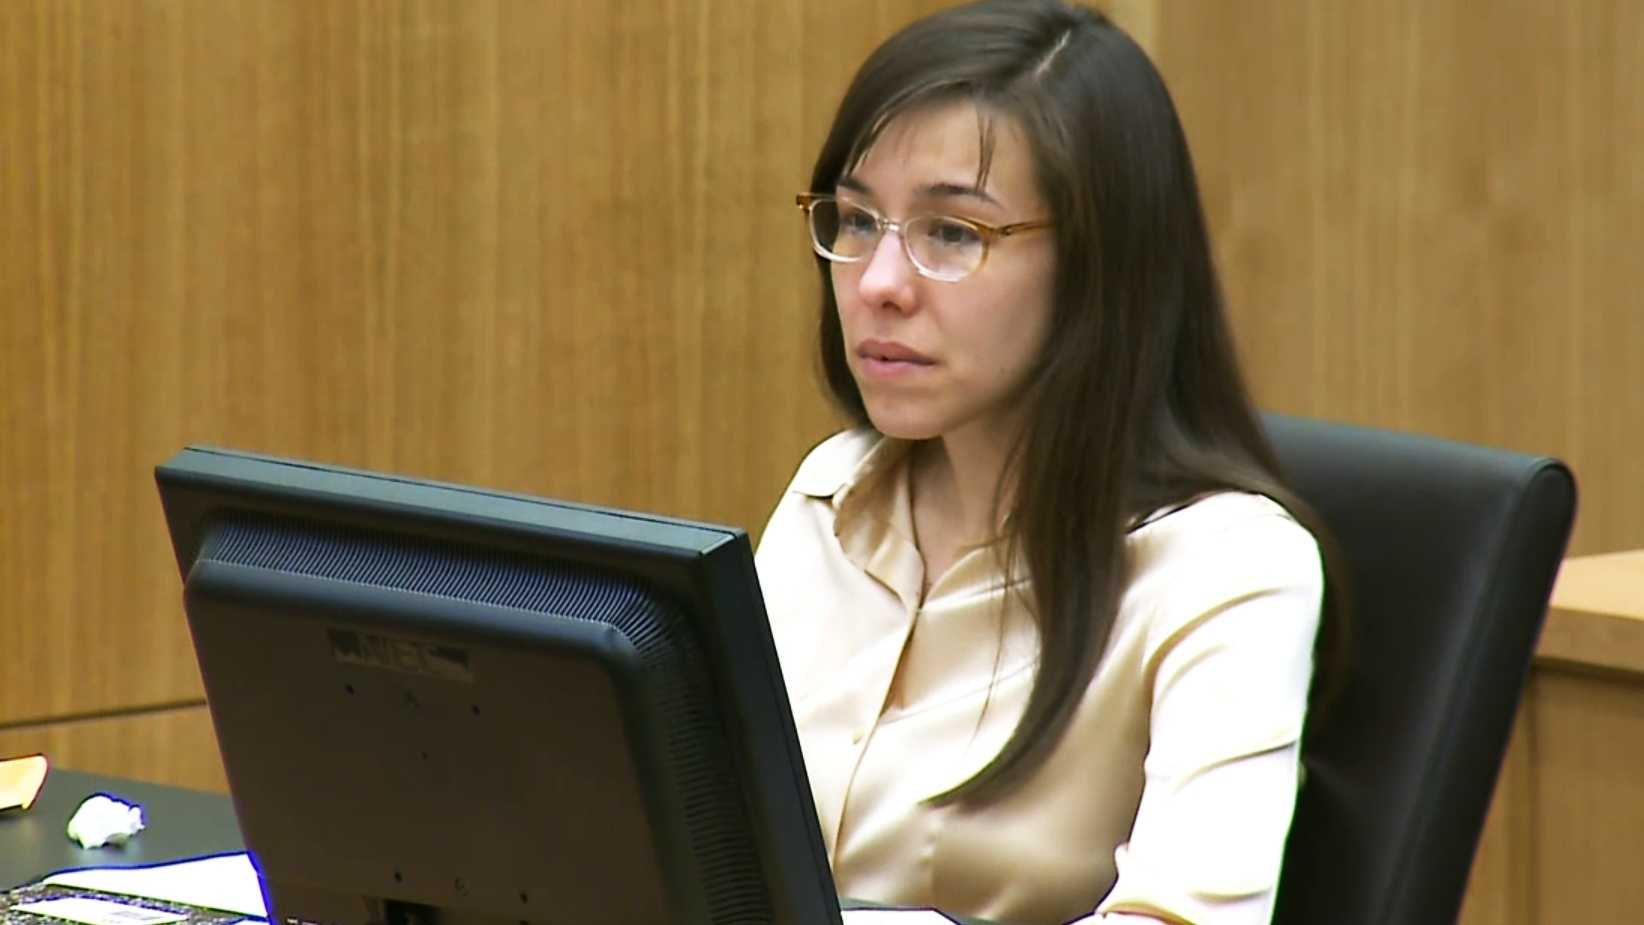 Jodi Arias in court on Wednesday, May 15, 2013.